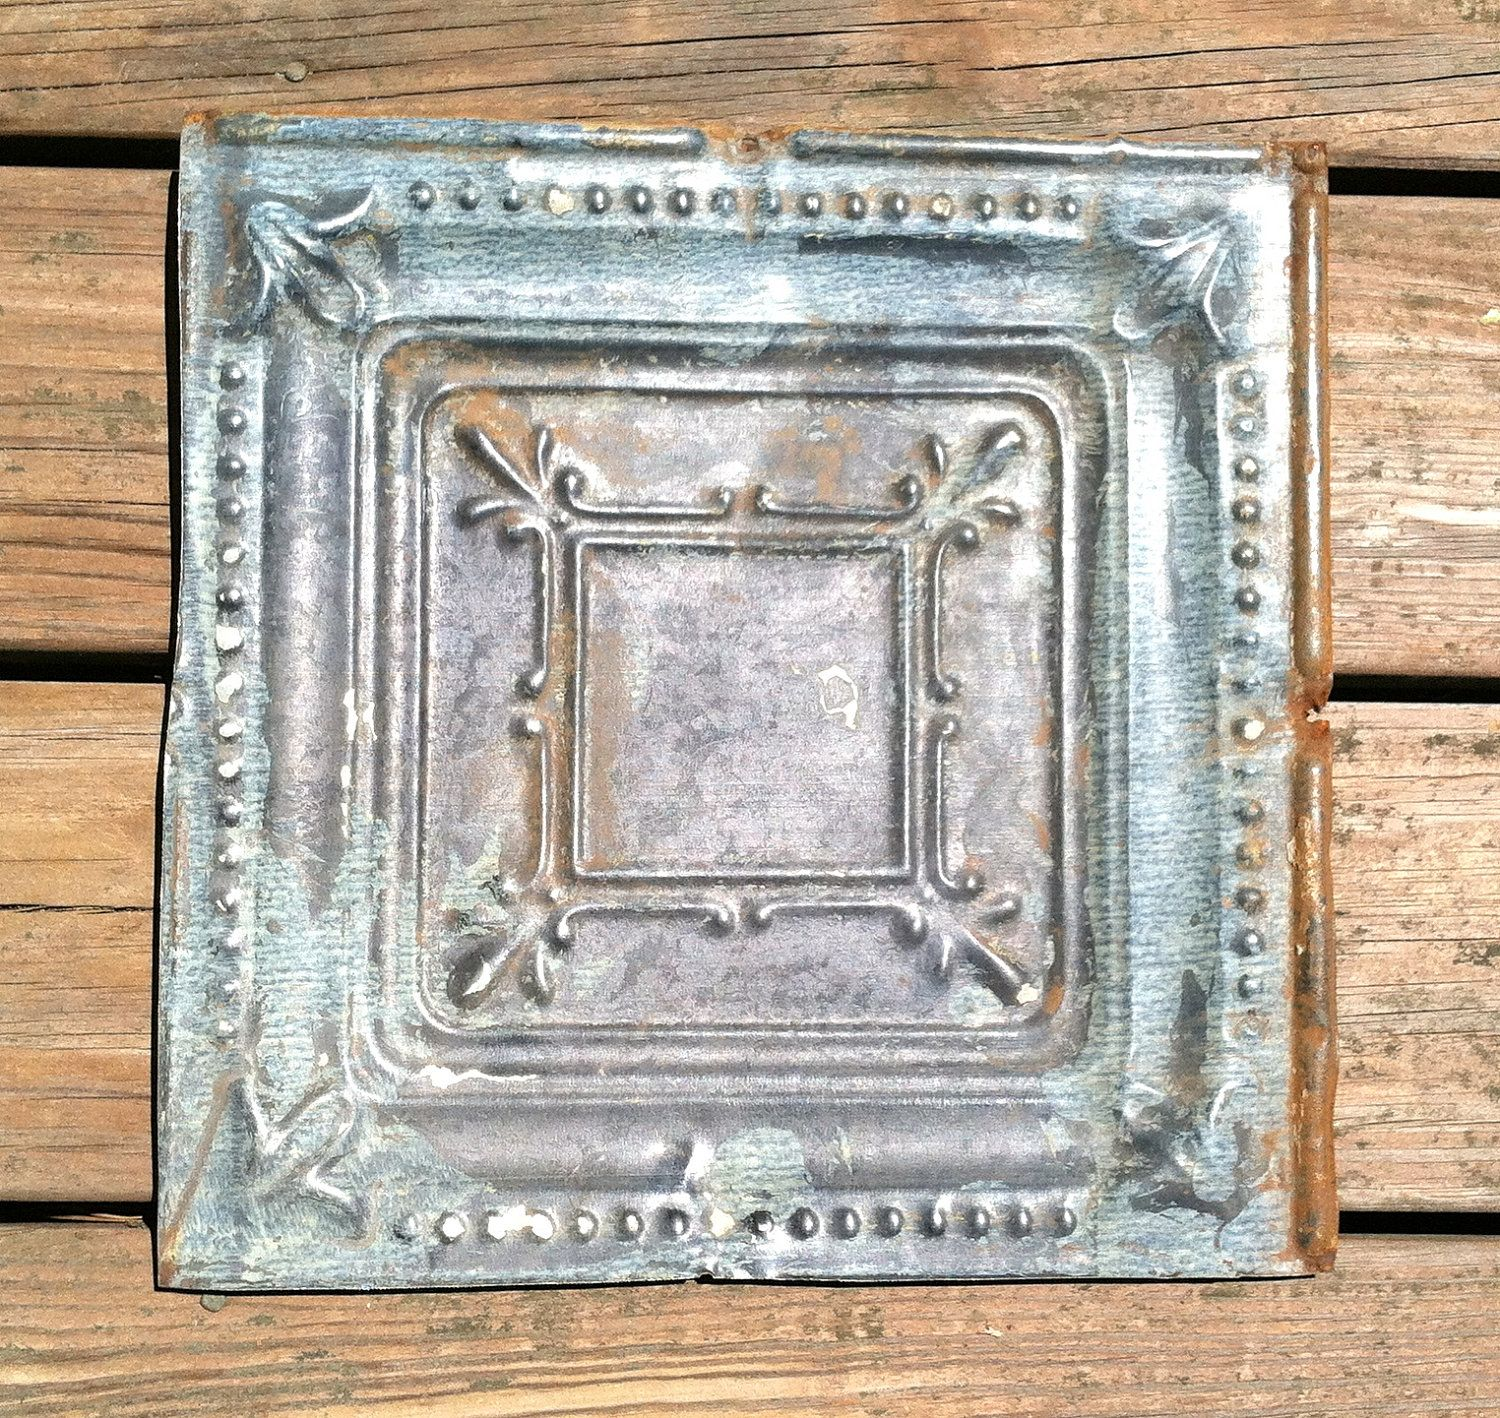 Vintage pressed tin ceiling tile 12in by 12in grade b 1300 via vintage pressed tin ceiling tile 12in by 12in grade b 1300 via etsy dailygadgetfo Gallery